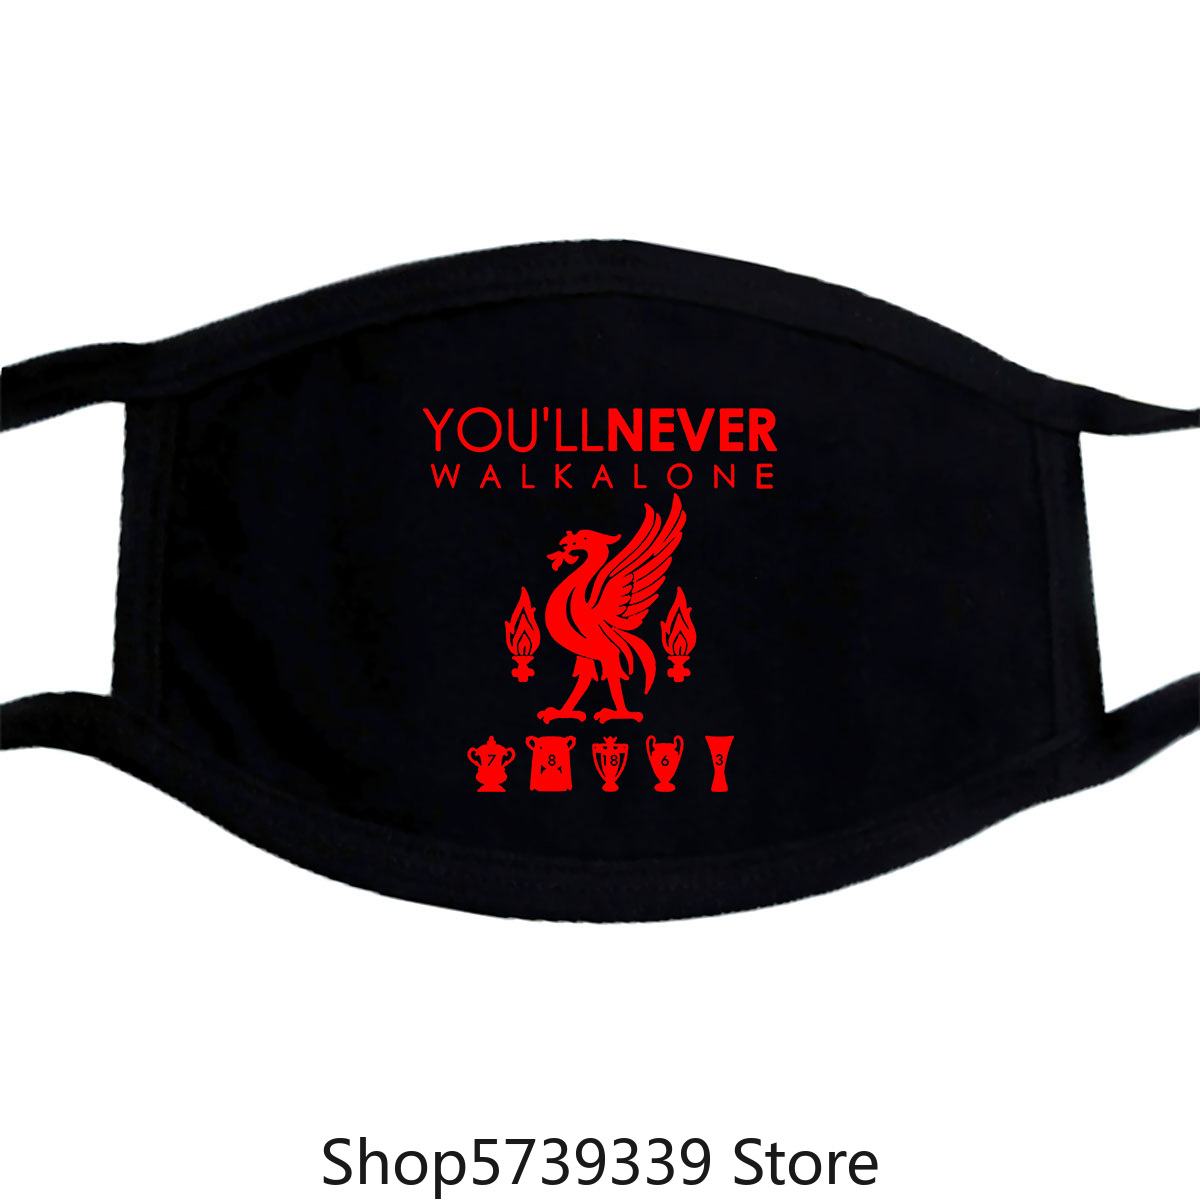 Liverpool Mask-Sport, Football, England, Ship, Gift, Xmas, Him Washable Reusable Mask With